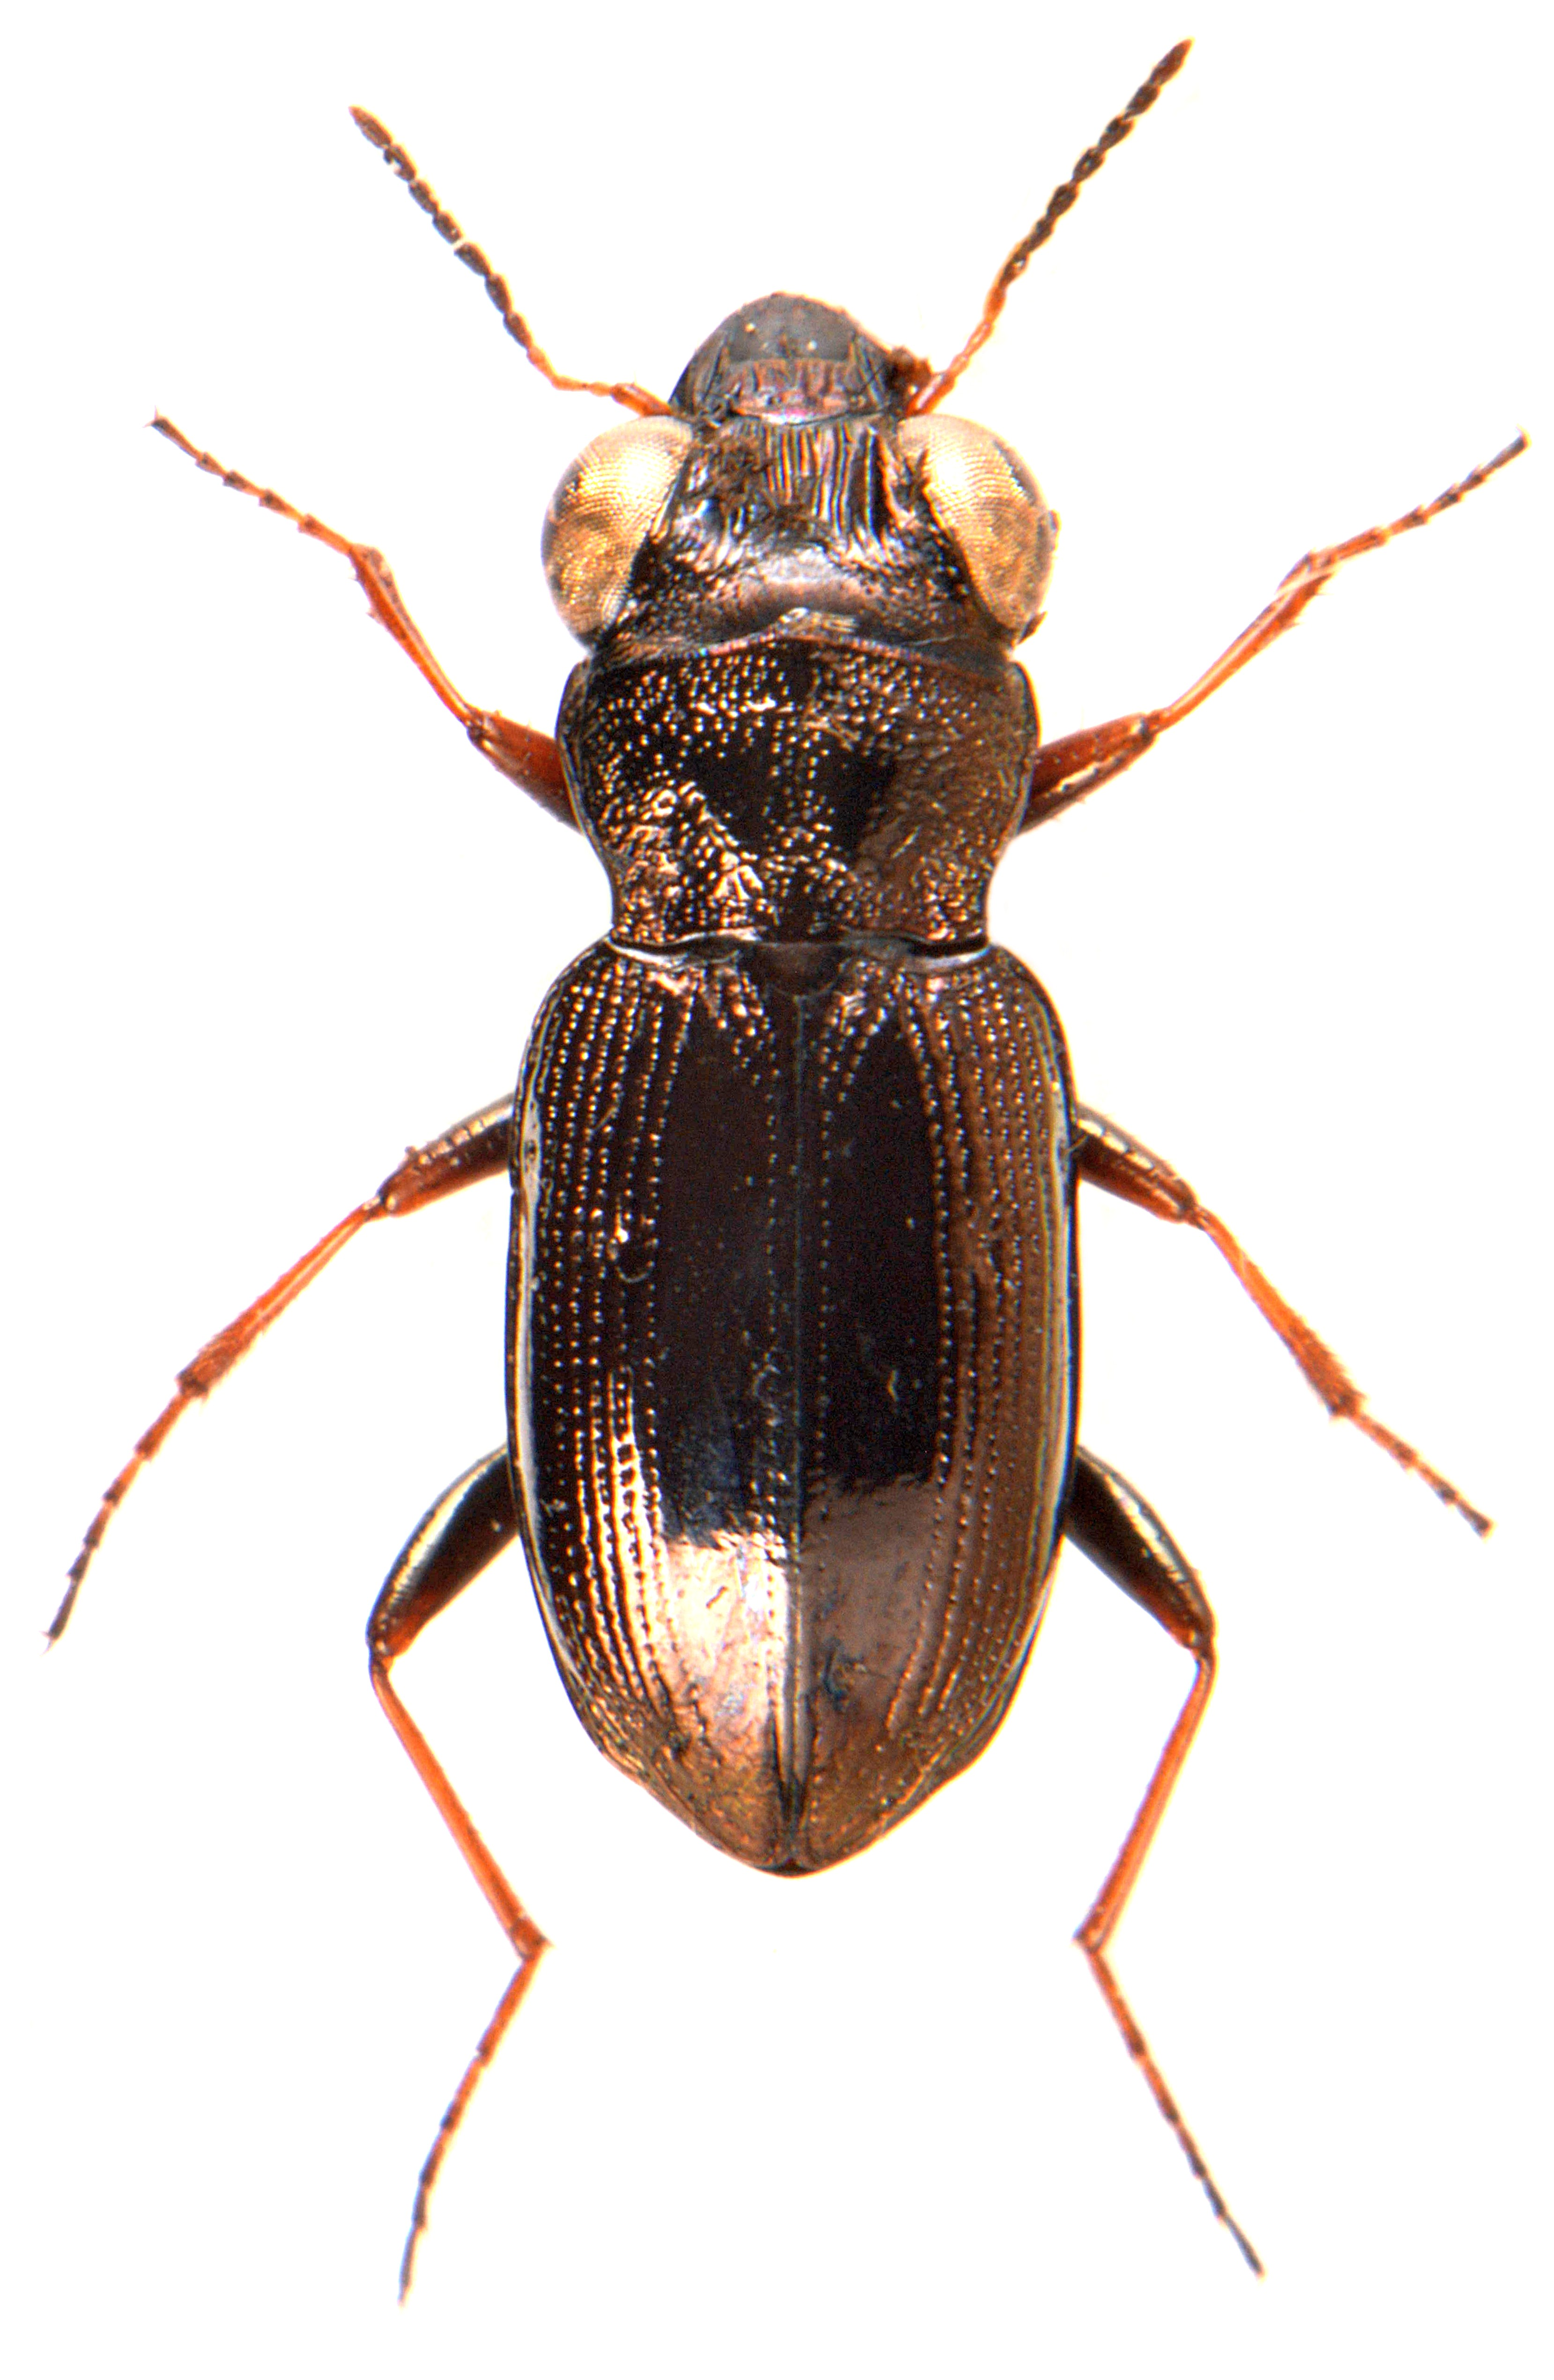 Notiophilus rufipes